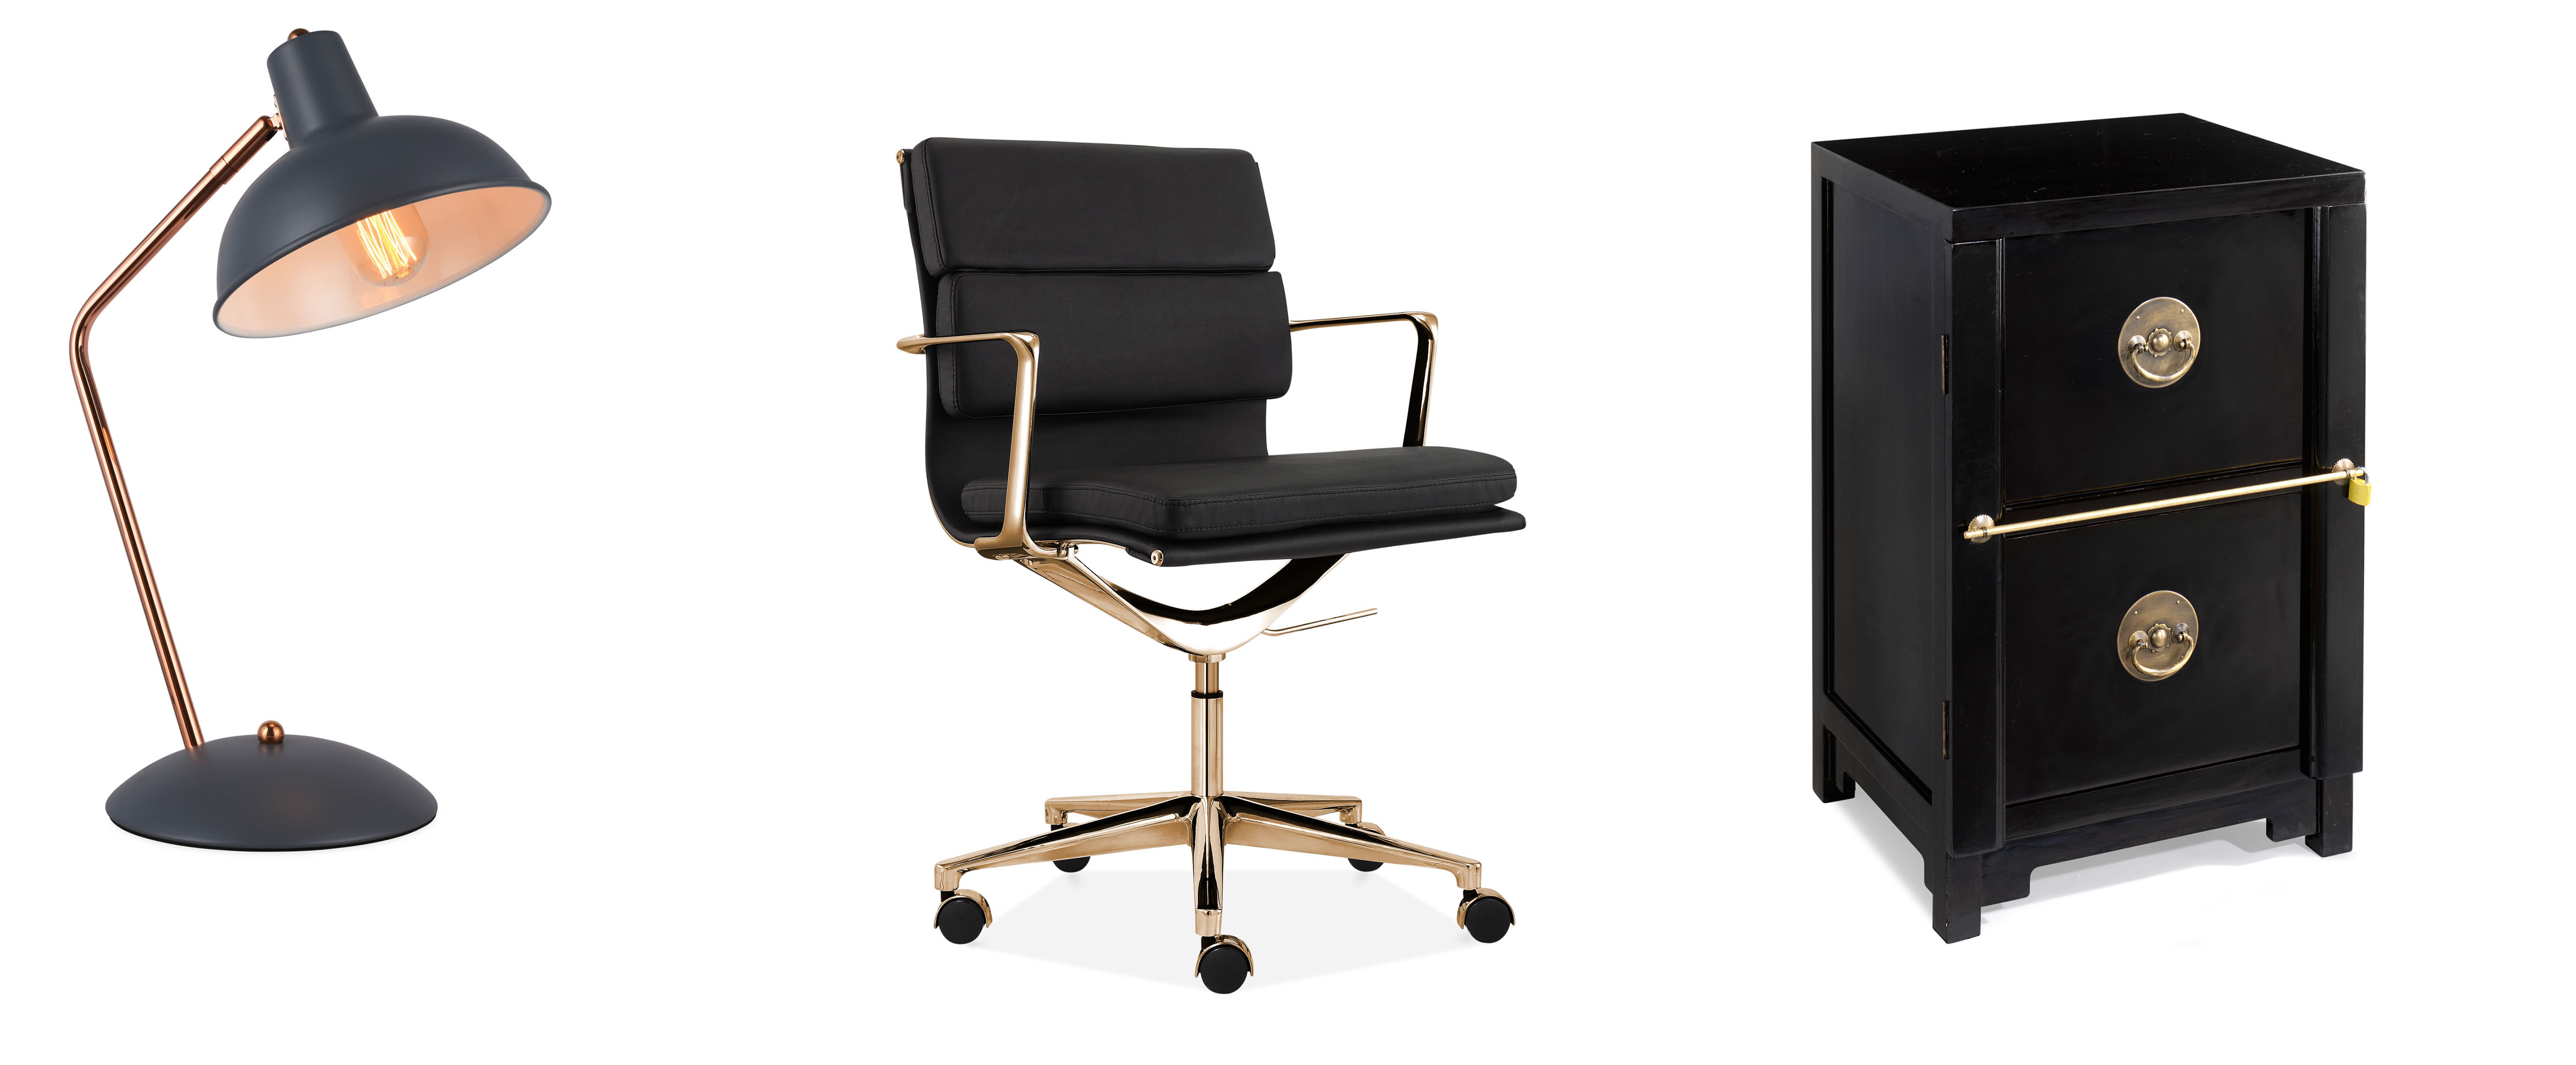 (L-R) Maya Metal Desk Lamp, Grey & Copper, £39, Cult Furniture; Soft Padded Office Chair, with Short Back, Black/Gold, £239, Cult Furniture; Two Drawer Filing Cabinet, Black Lacquer, £475, Shimu (Cult Furniture/Shimu/PA)